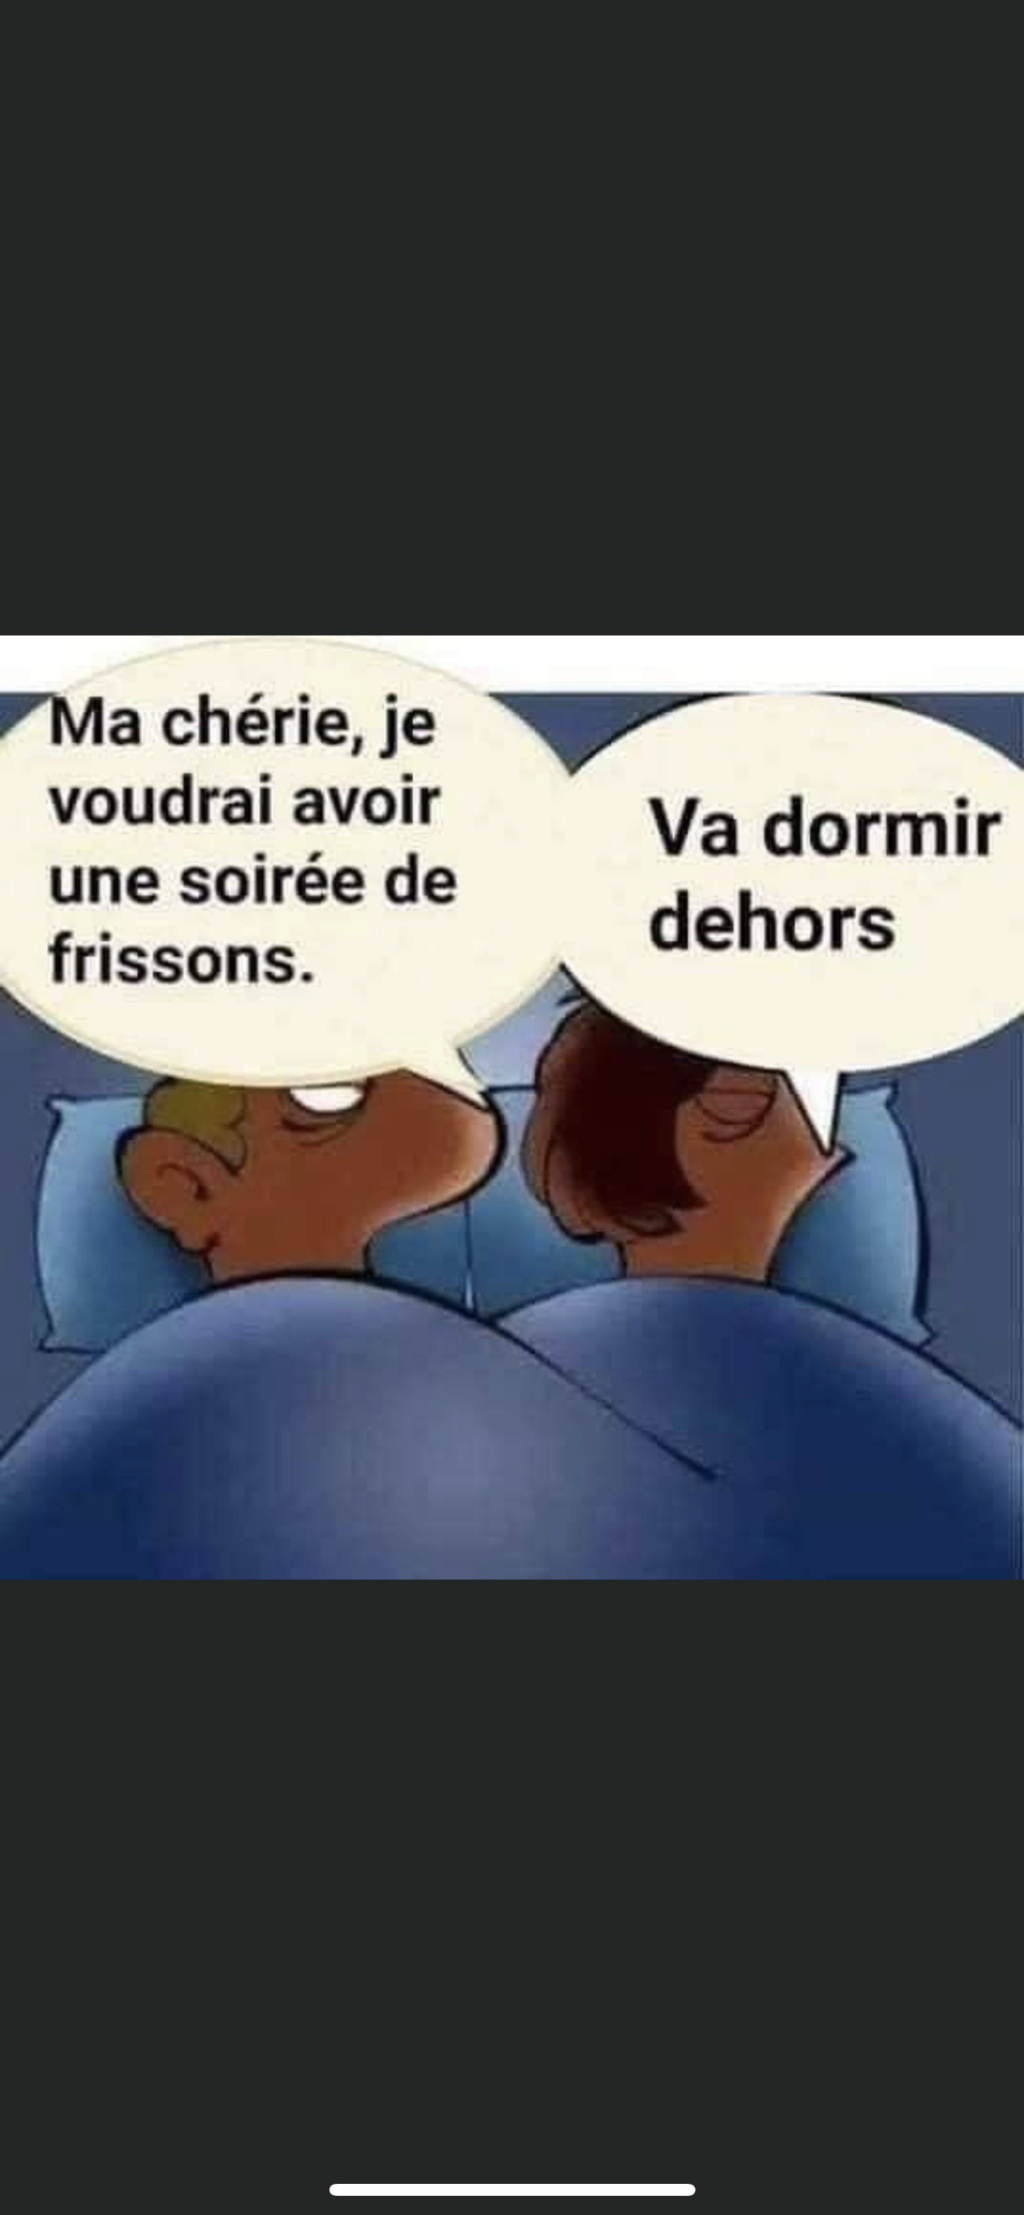 humour - Page 36 Fe95a110